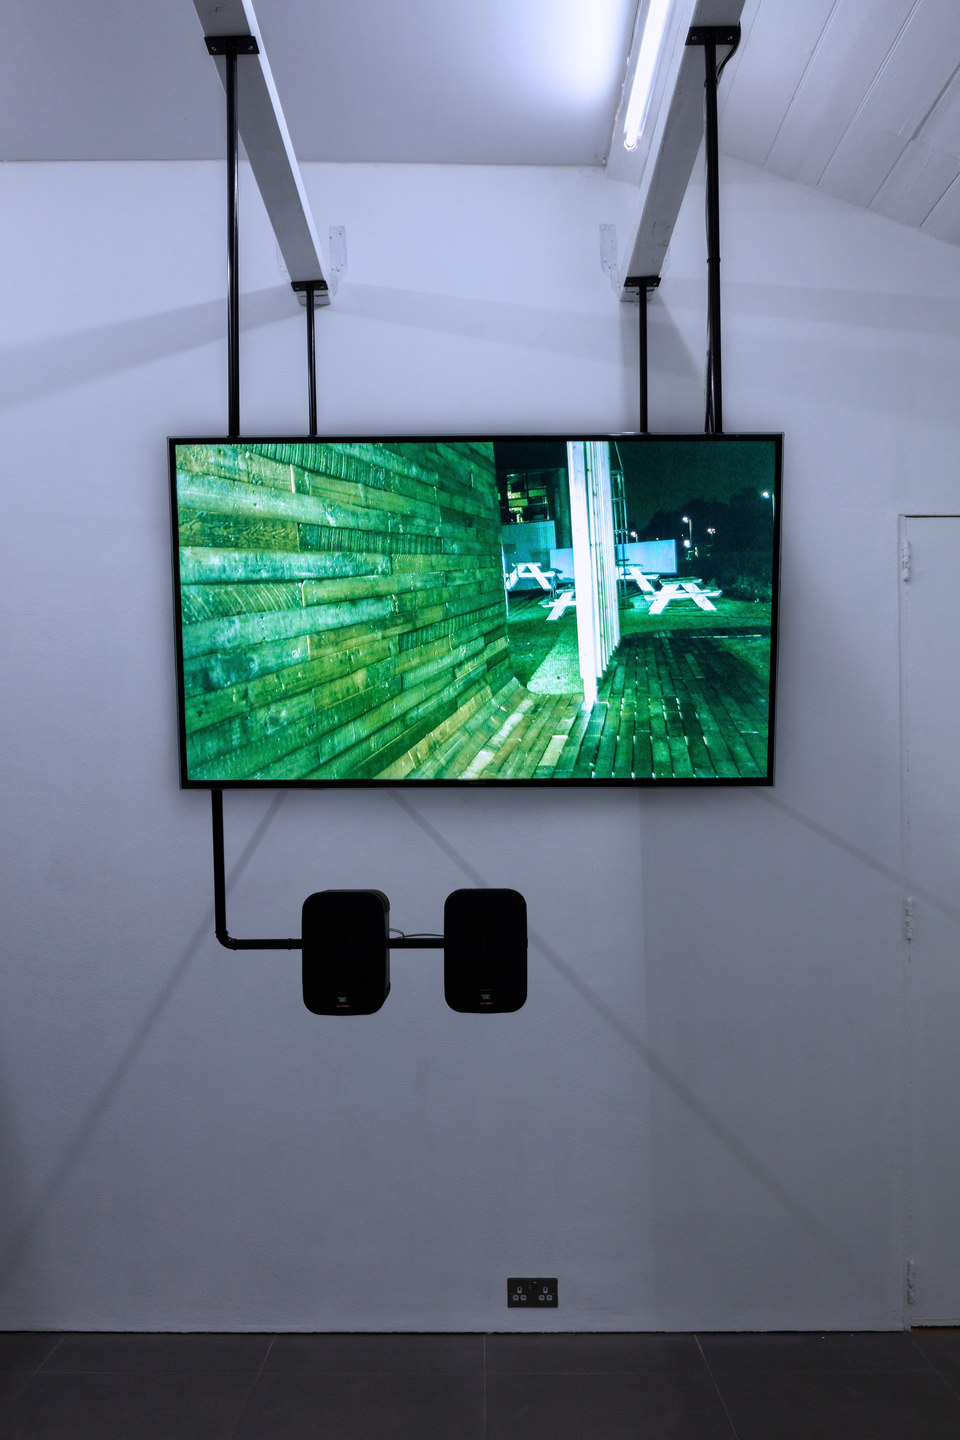 Dan Walwin, Winds 5, 2015 Sculpture, video: Winds 5 Cess, Jel Ever Terrass? 4 pieces Including 1 Monitor & 1 set of speakers Samsung UE48H6400, JBL Control 1PRO speakers,  Cell Project Space